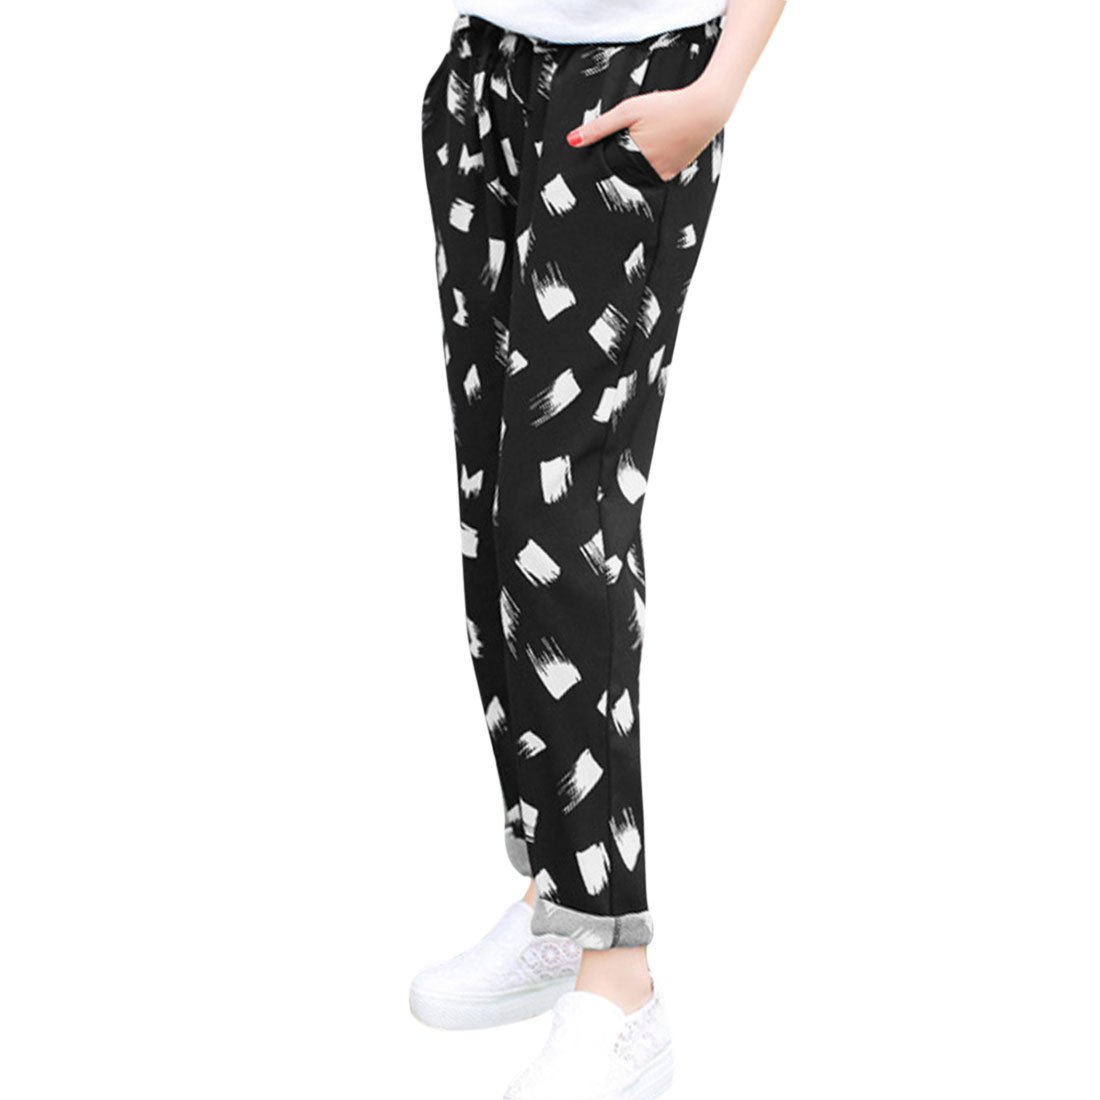 Lady Drawstring Waist Novelty Prints Cropped Pants